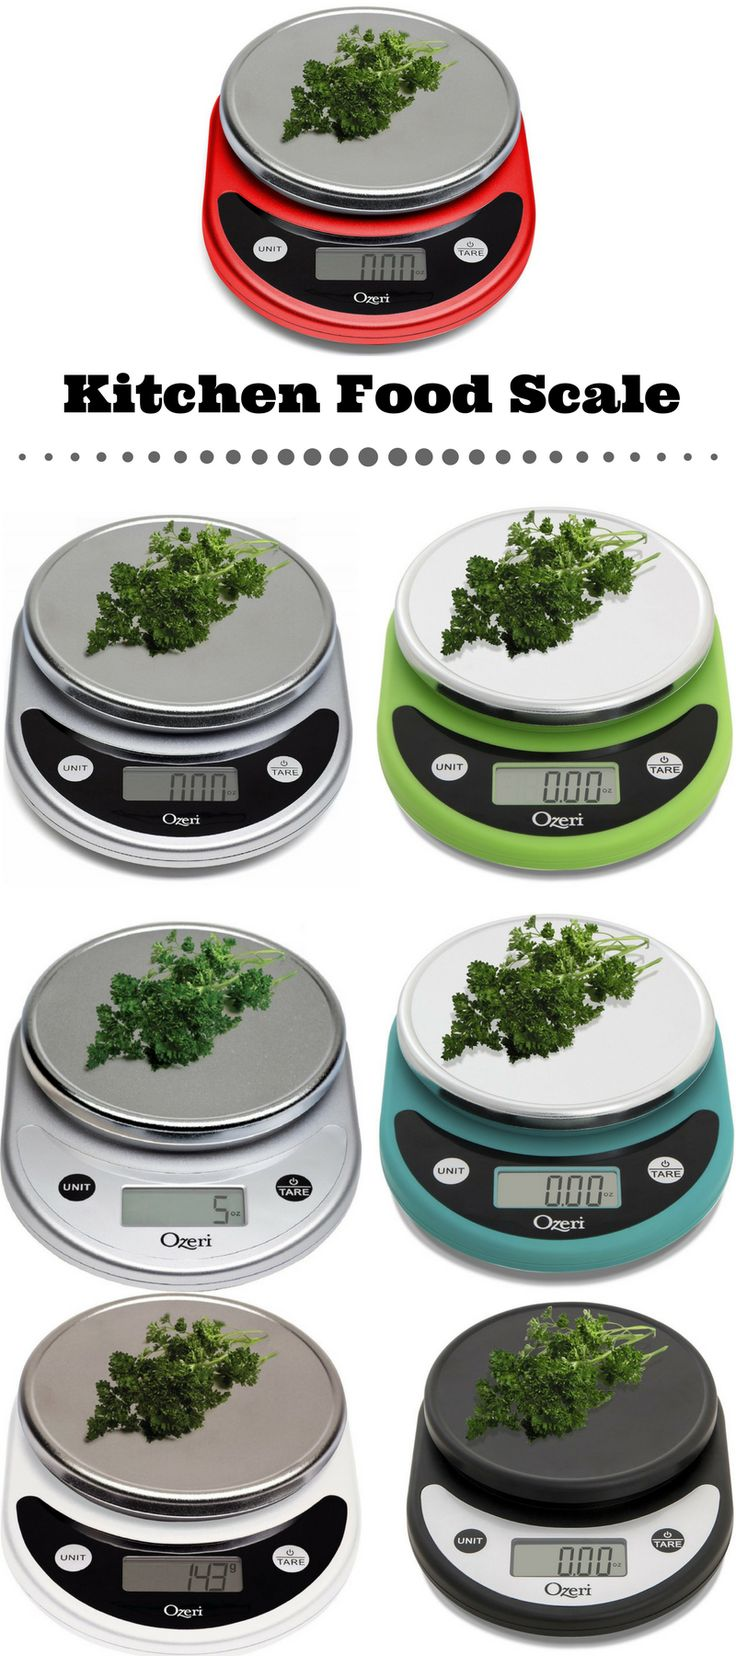 Best selling kitchen food scale in different colors. This kitchen food scale is multifunctional and easy to use. #kitchen #food #kitchendesign